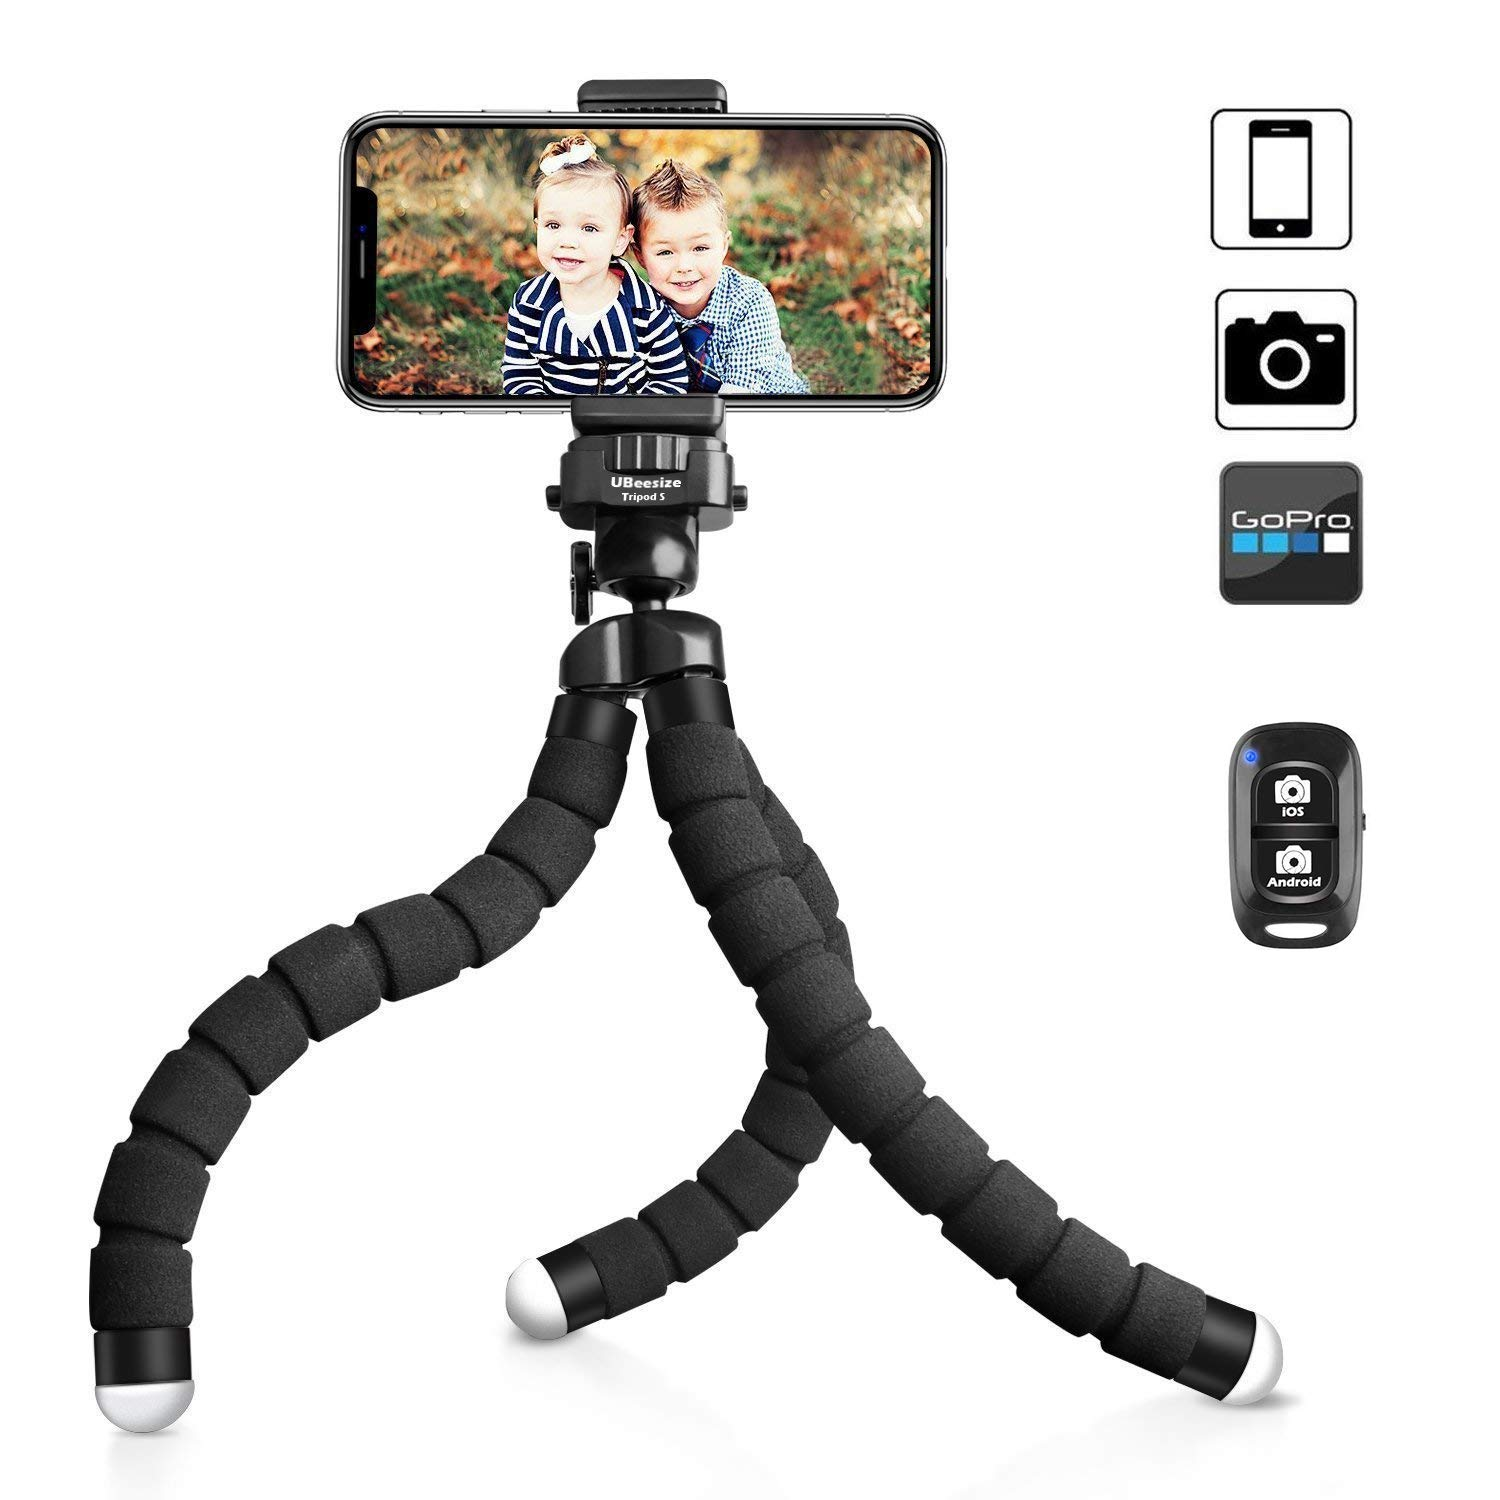 UBeesize Tripod S, Premium Phone Tripod, Flexible Tripod with Wireless Remote Shutter, Compatible with iPhone/Android Samsung, Mini Tripod Stand Holder for Camera GoPro/Mobile Cell Phone (Upgraded)